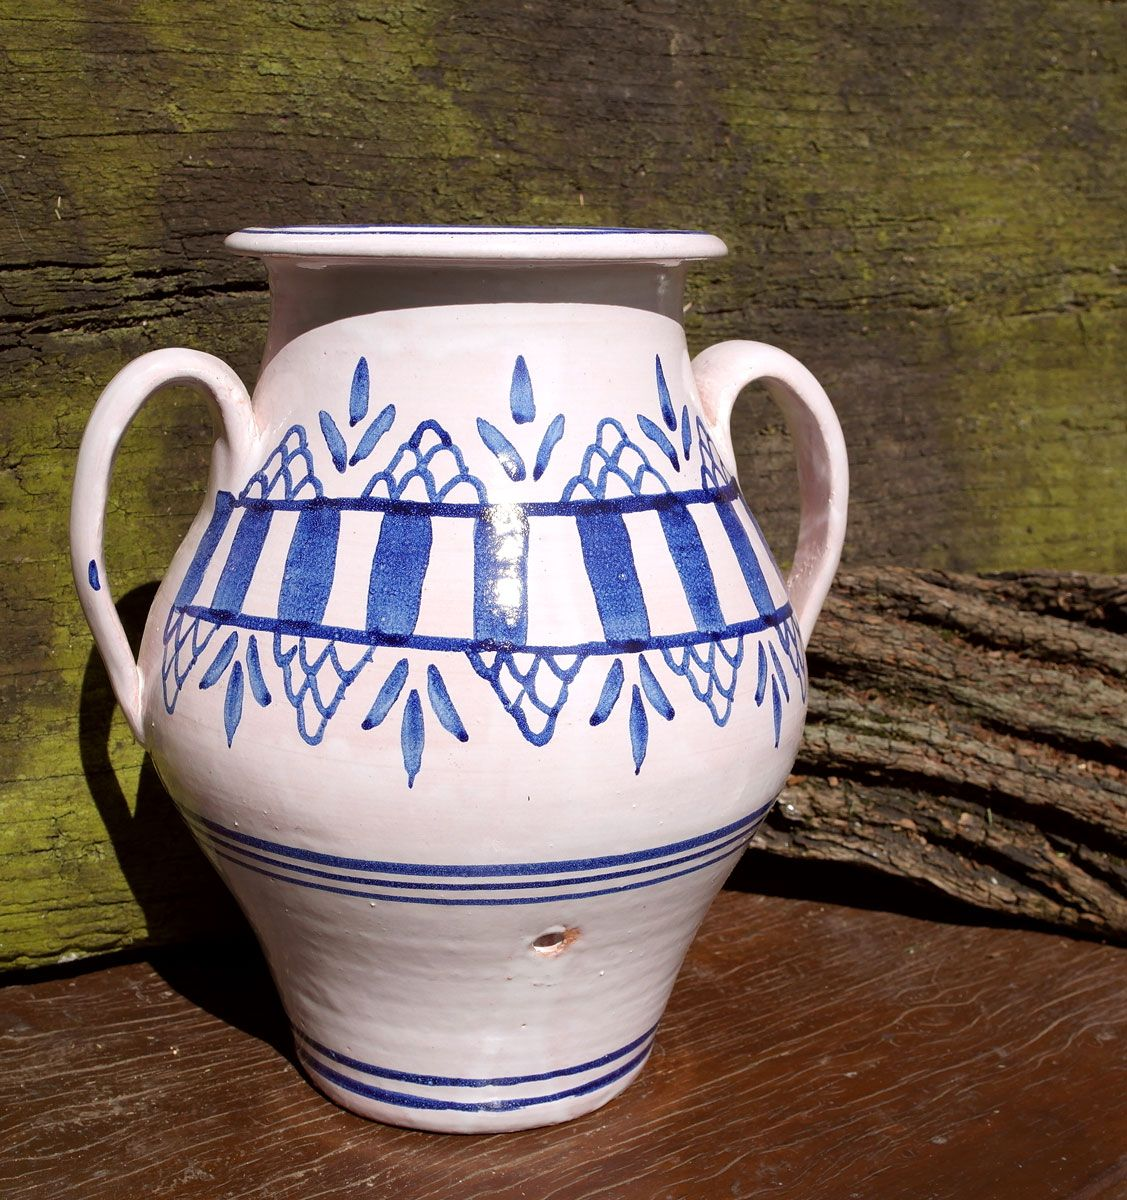 Vase to make butter, artisan tradition since the mid-twelfth century, Ceramic Lighthouse. Crafts Asturias.